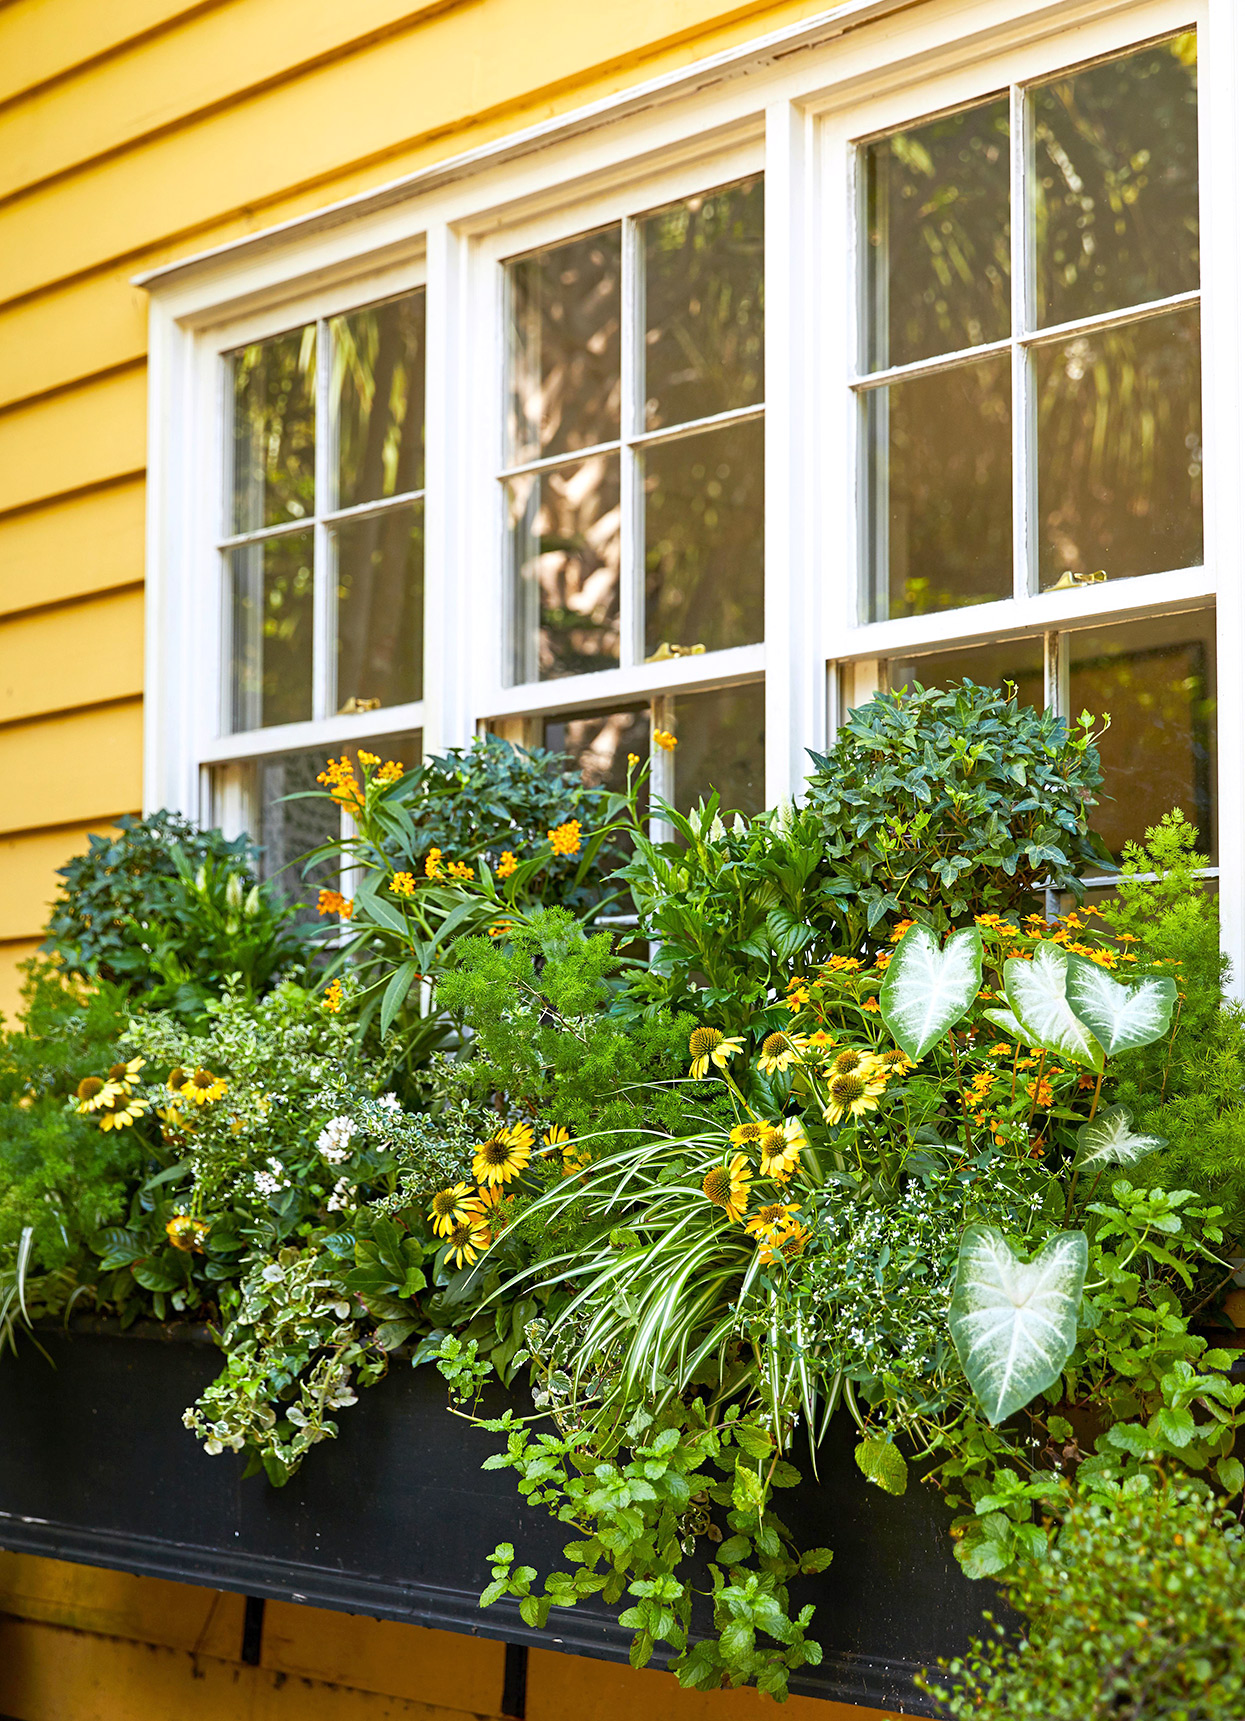 yellow exterior with herbs and flowers in window box